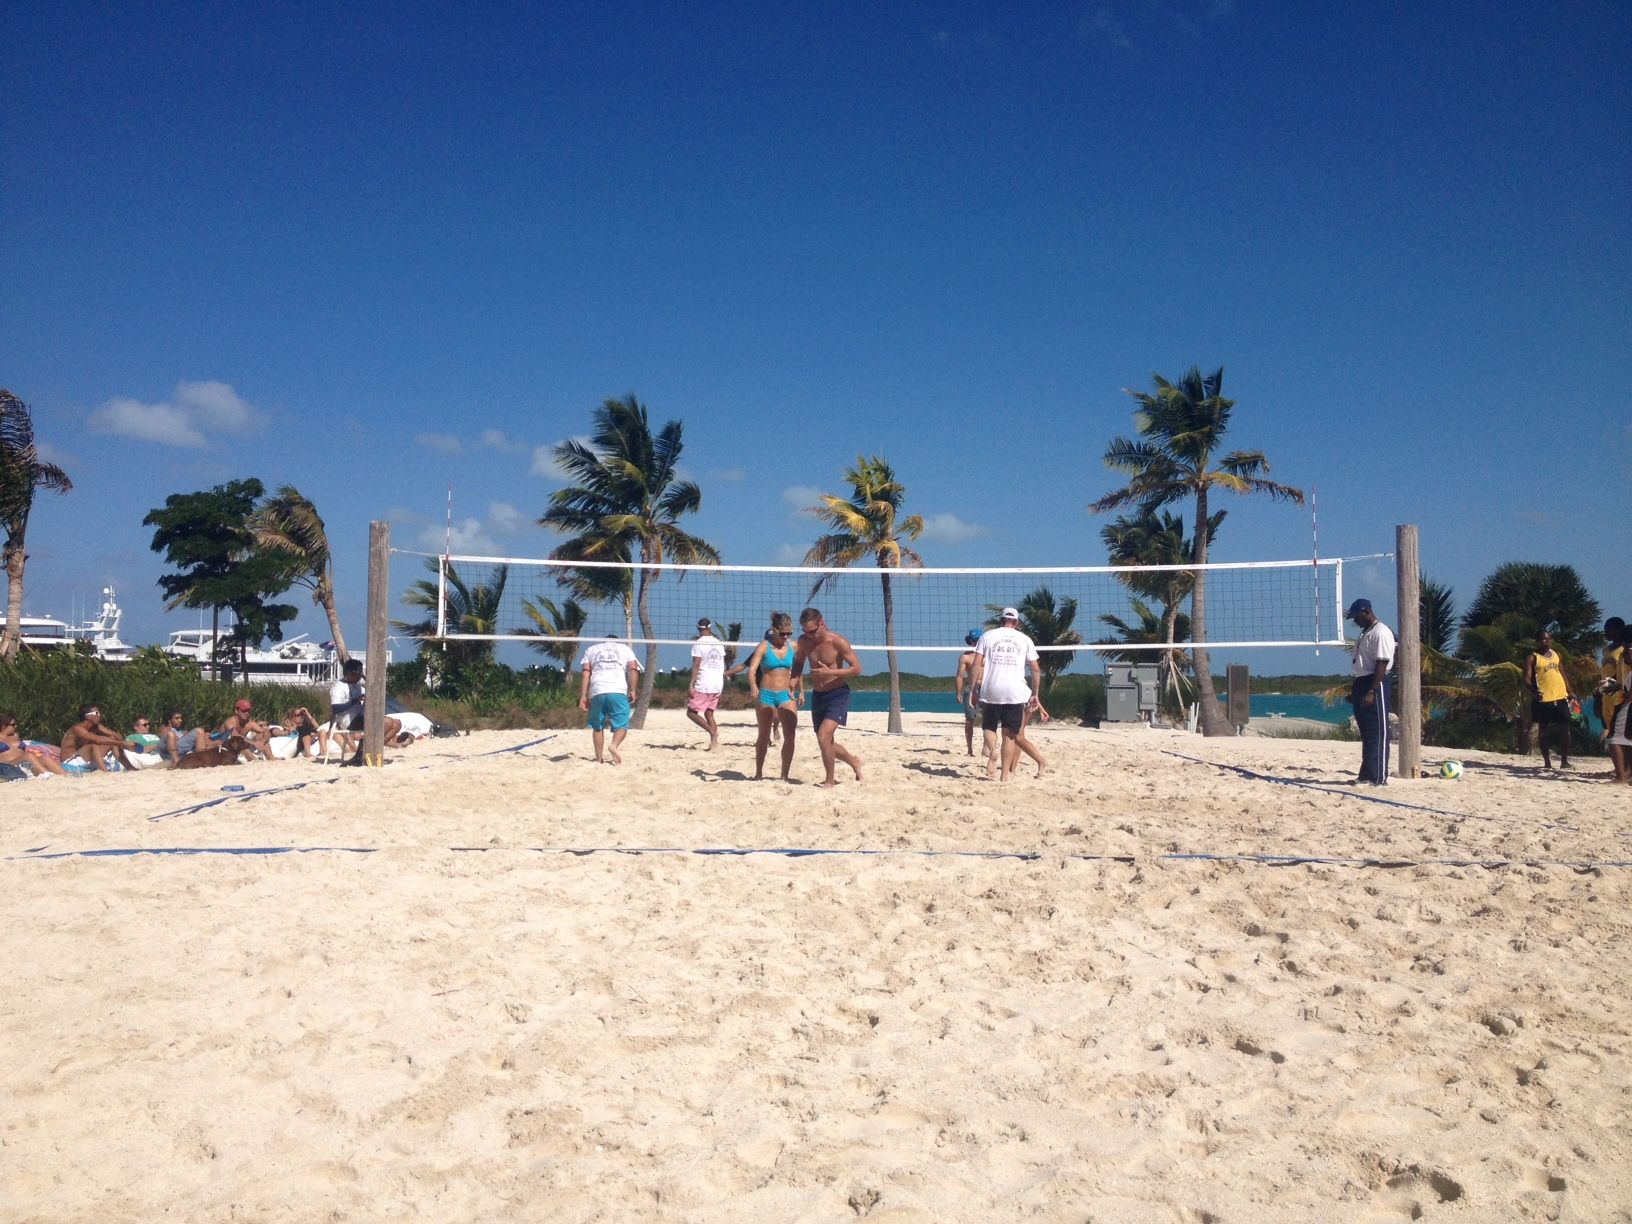 Beach Volleyball At Blue Haven Turks And Caicos Resorts Adventure Travel All Inclusive Resorts